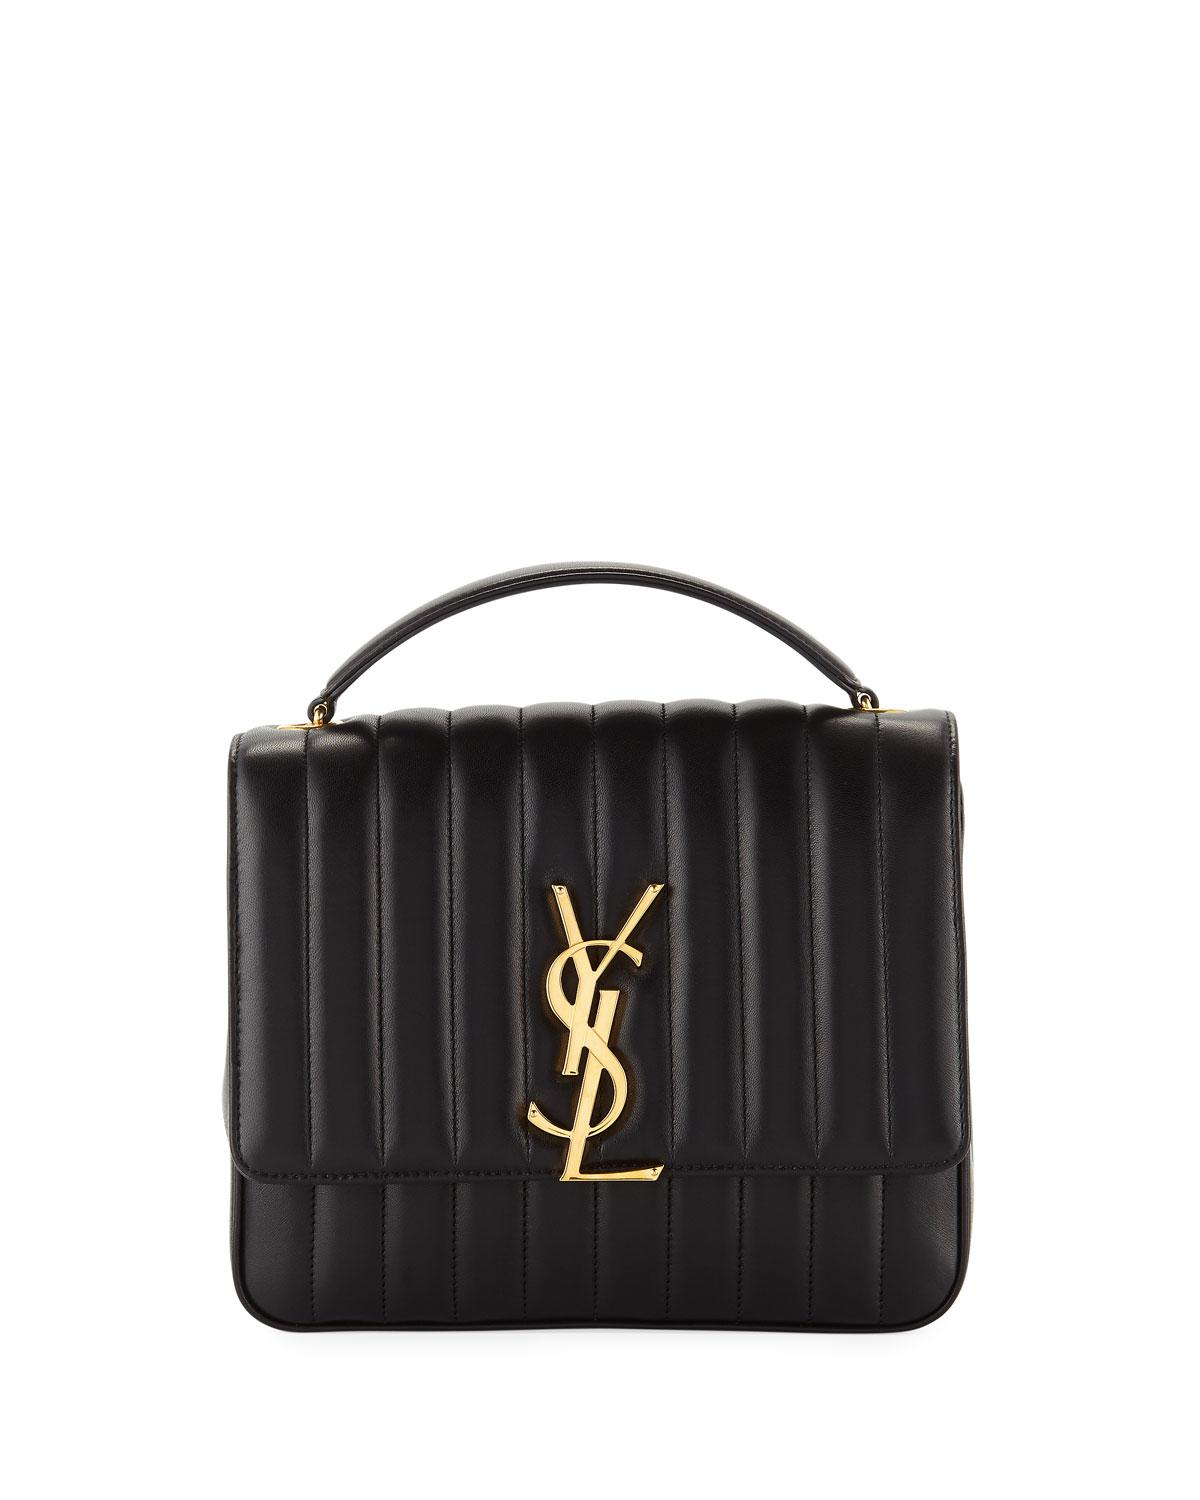 1b92bf5027 Saint Laurent. Women s Black Vicky Monogram Ysl Large Quilted Leather Chain  Crossbody Bag